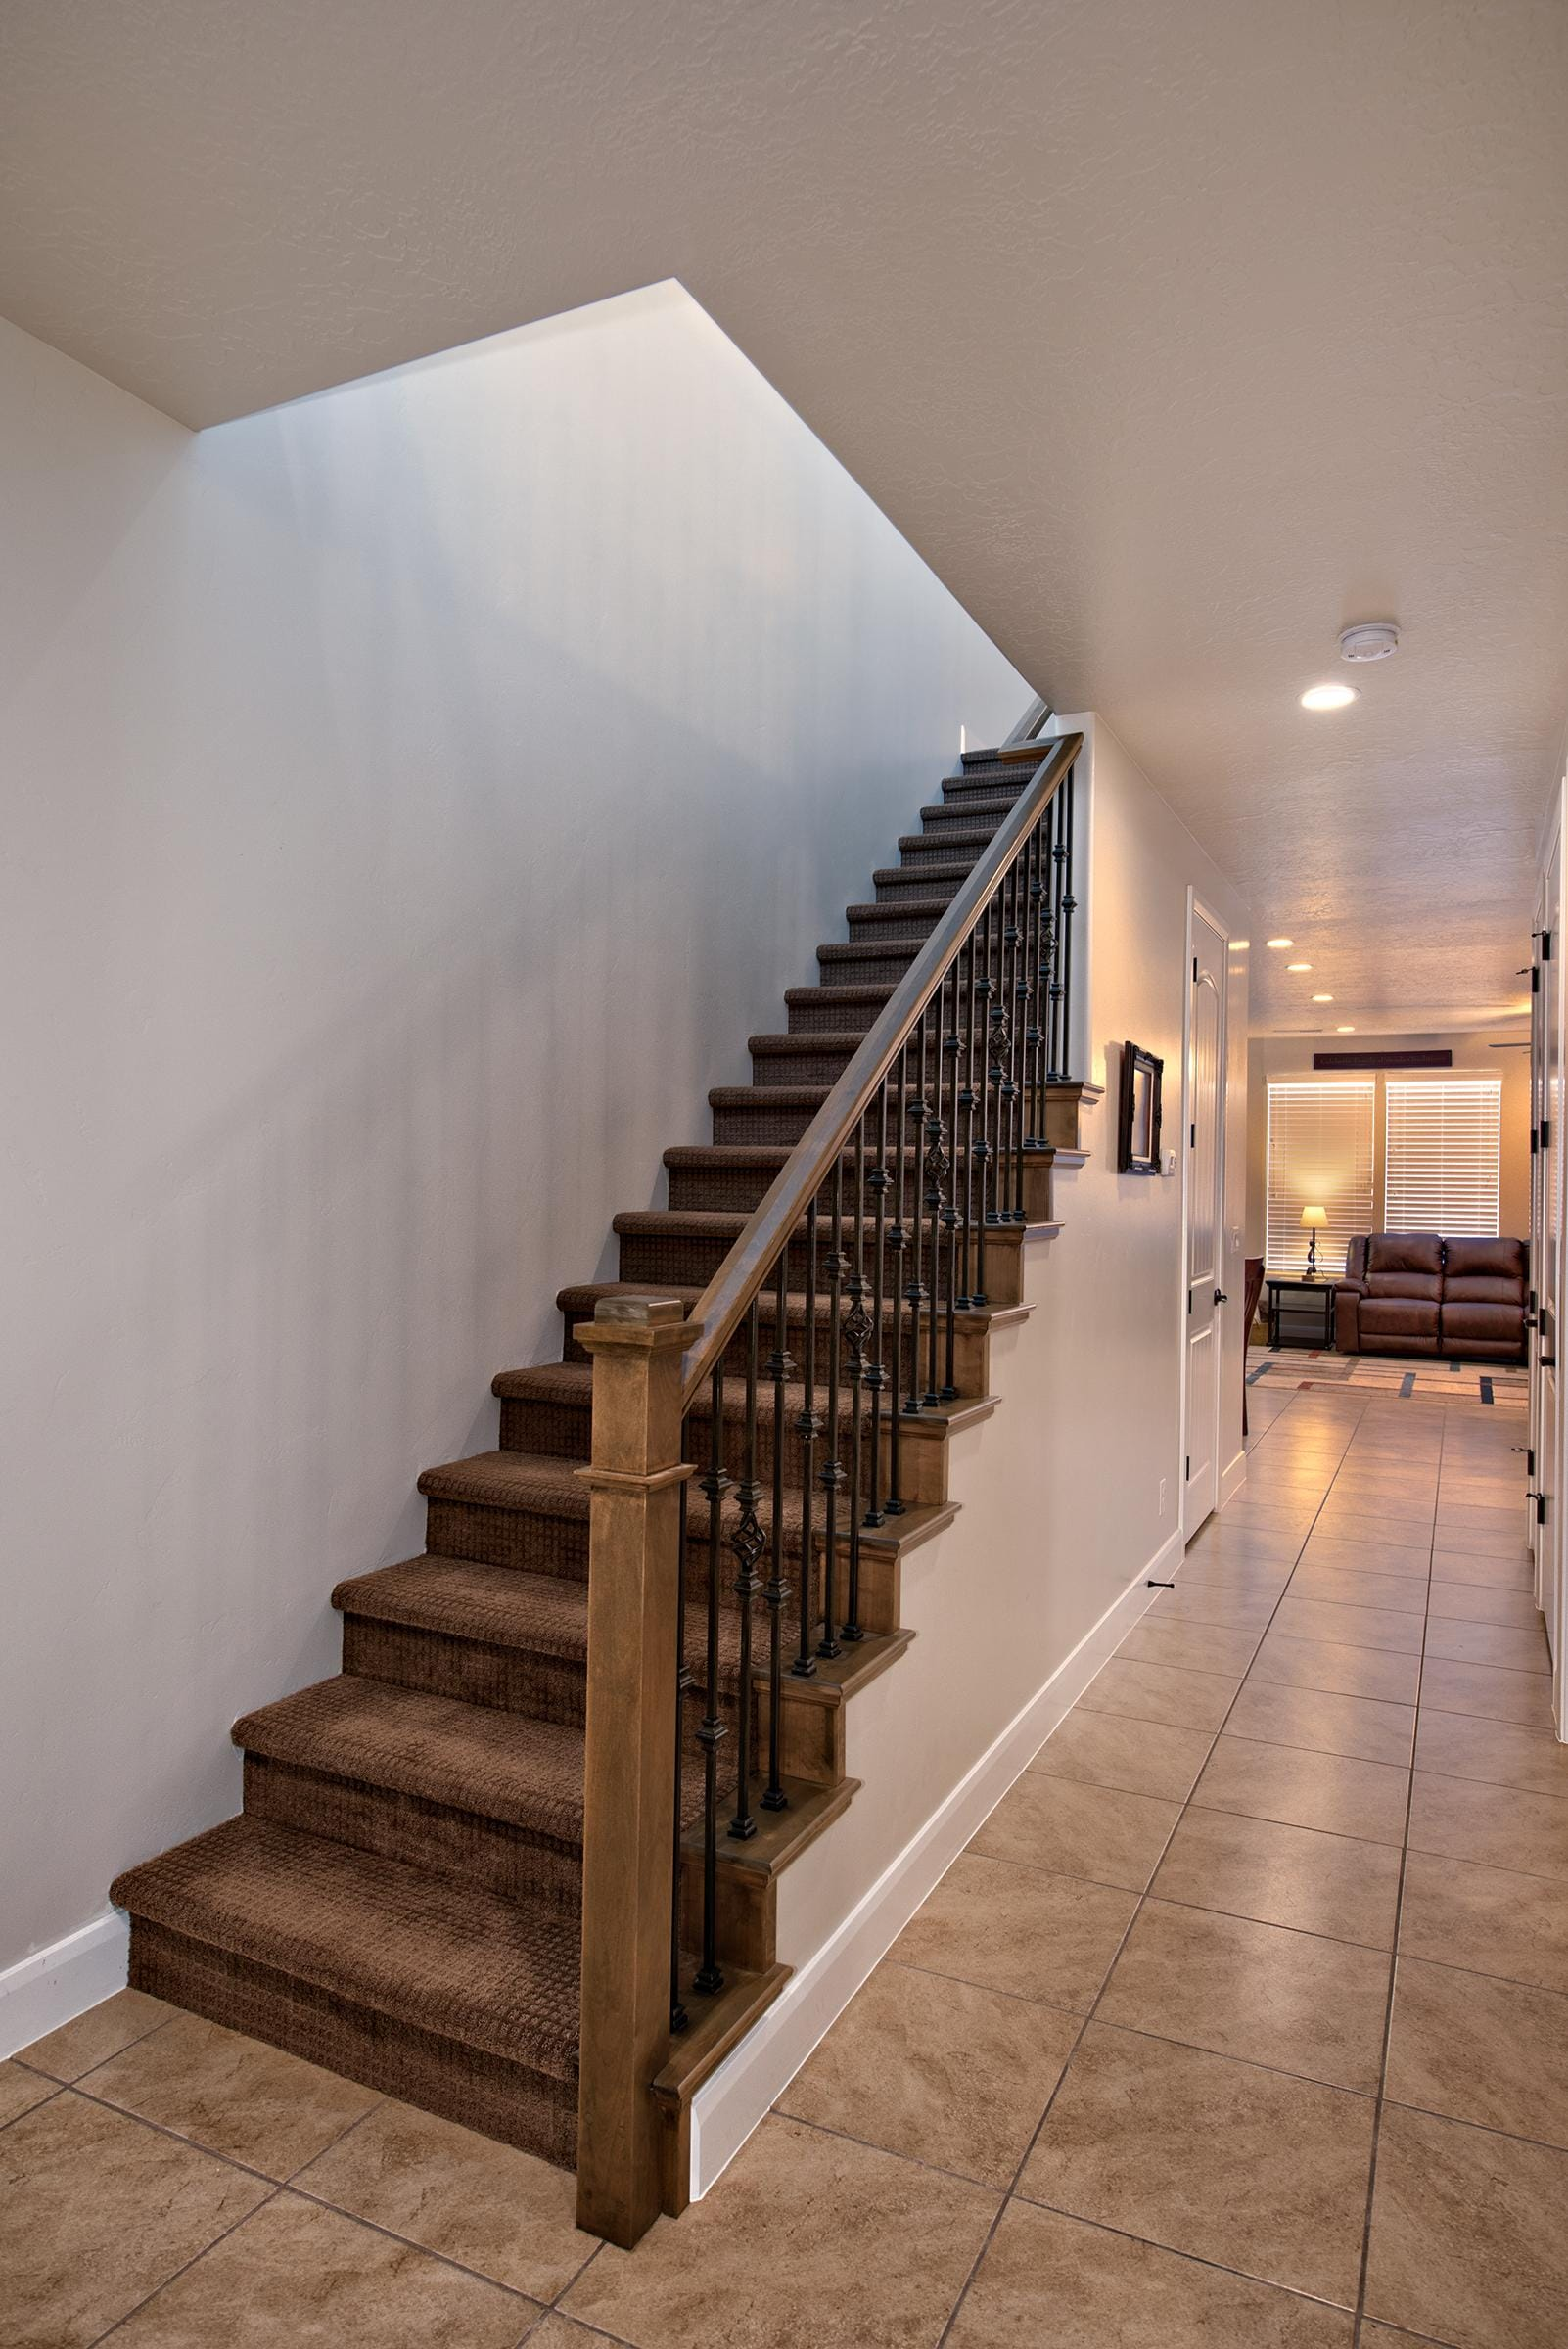 The Main Hallway leads to the Master Bedroom, Kitchen, Dining Room, and Living Room.  The Stairway leads to the Upstairs Bedrooms and Family Room.